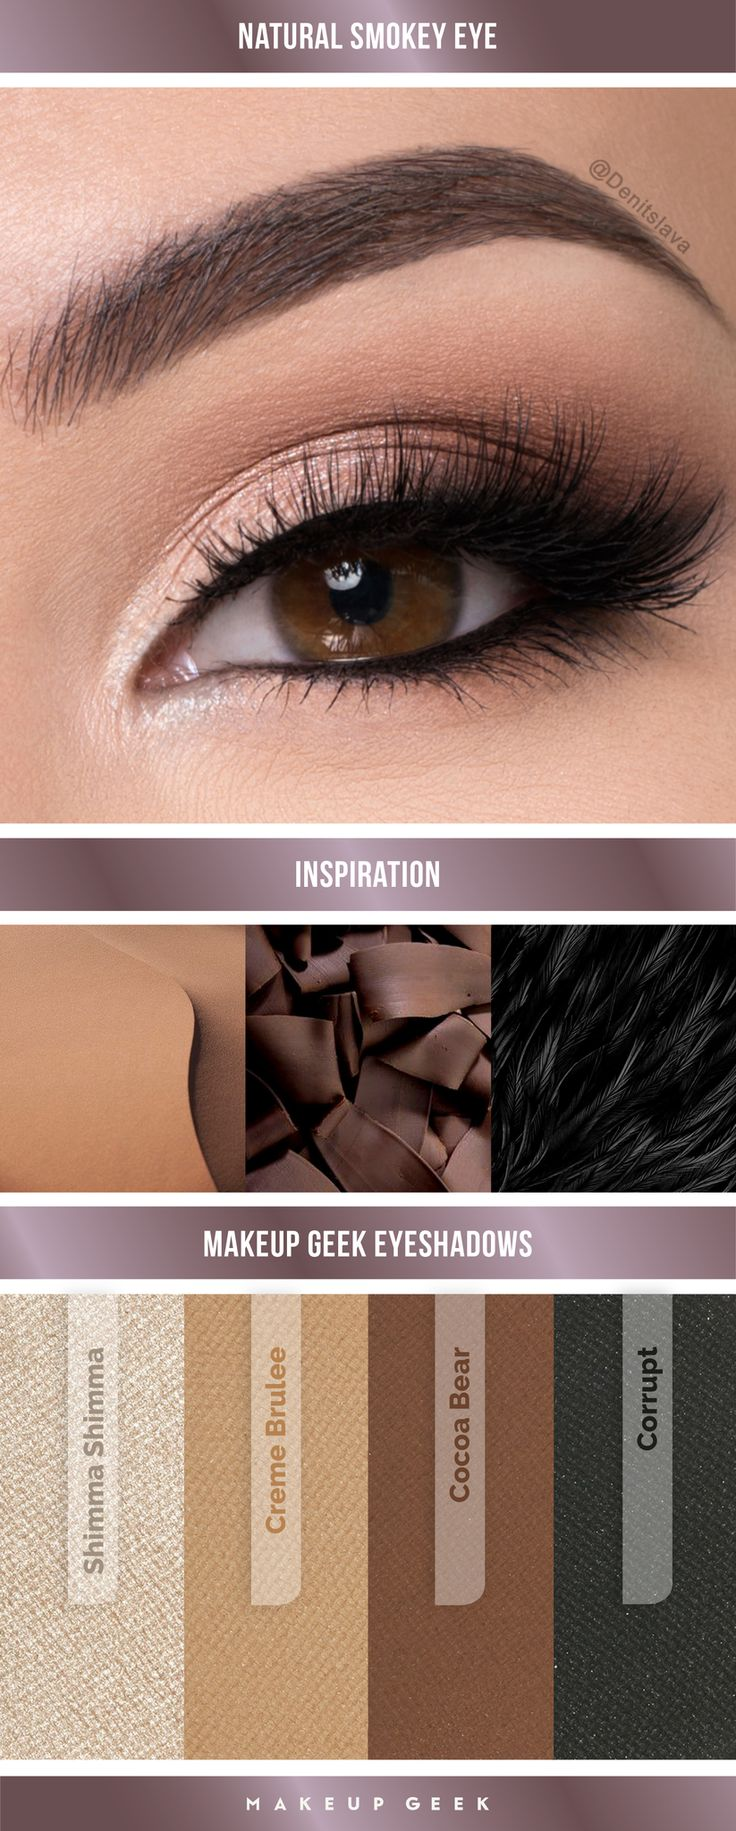 Best Ideas For Makeup Tutorials Natural Smokey Eye Look By